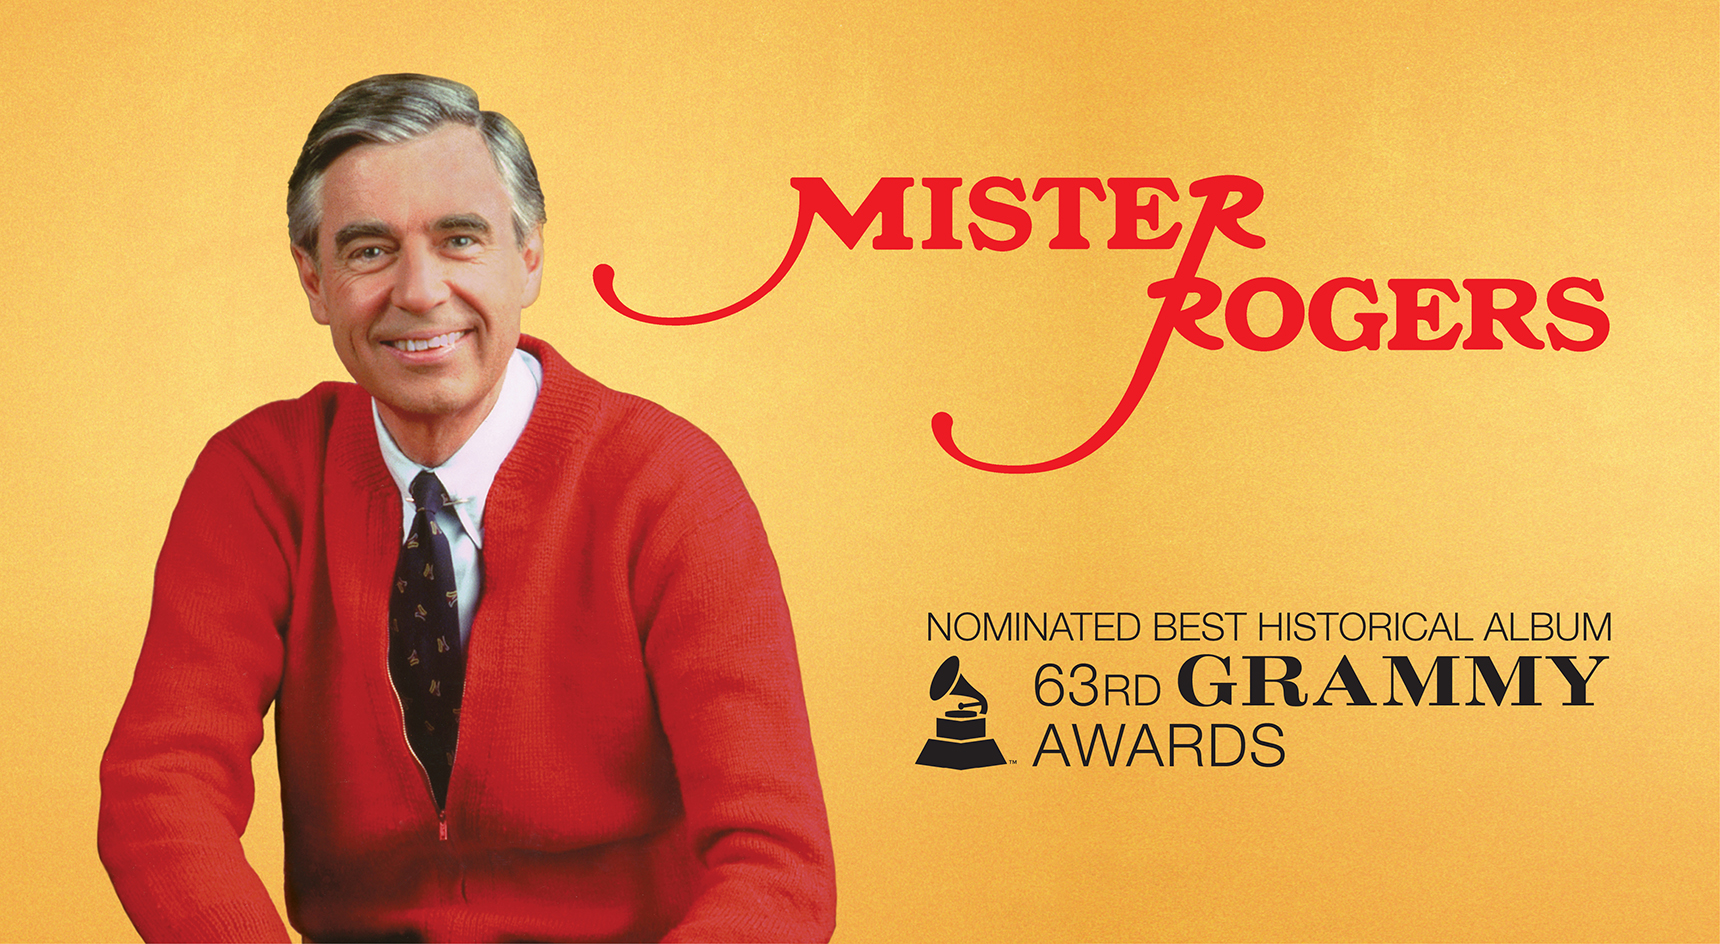 Mister Rogers - Grammy Nomination